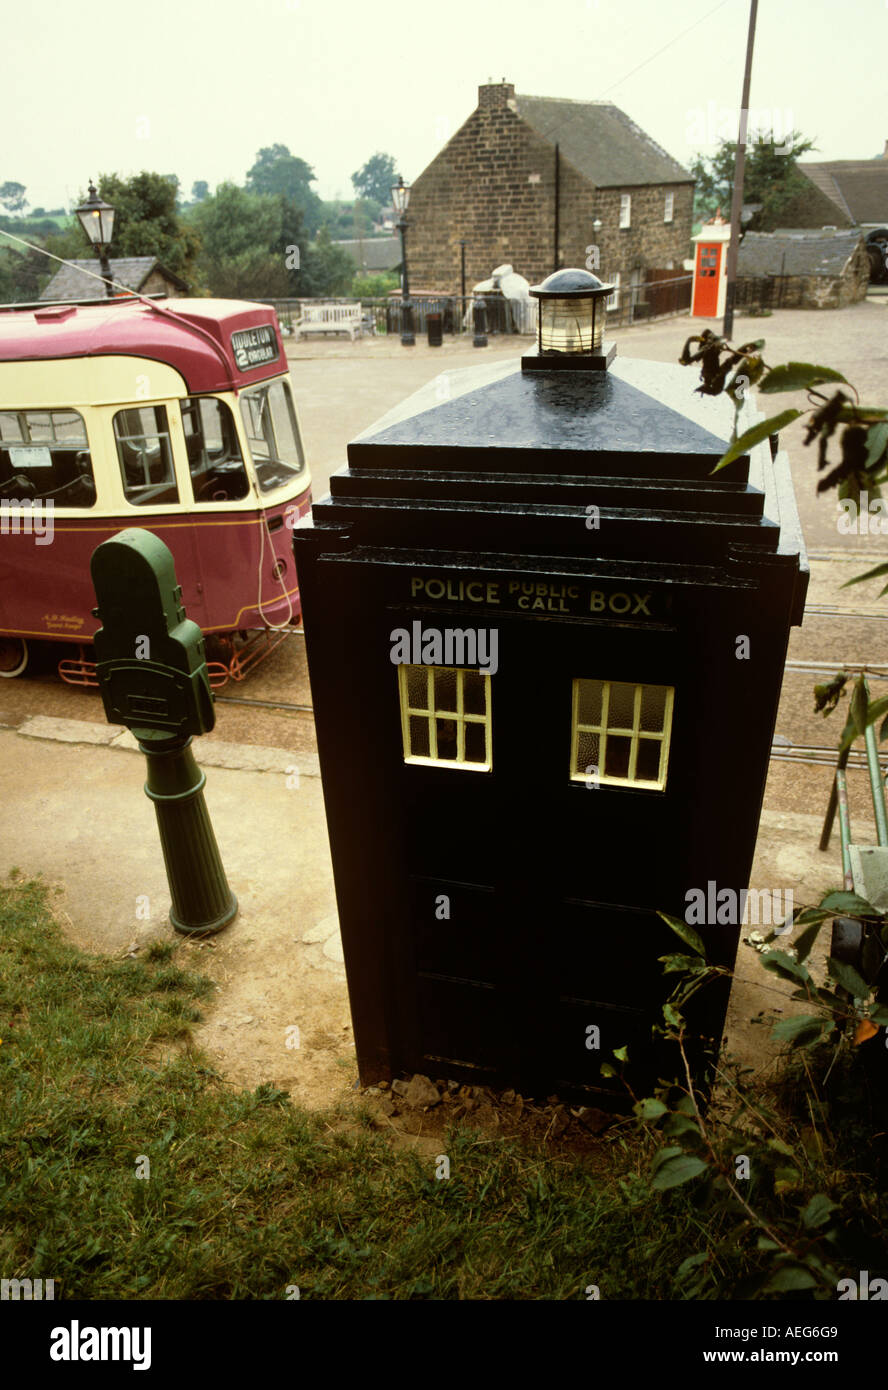 Derbyshire Crich Transport Tramways Museum police call box and K1 phone box - Stock Image